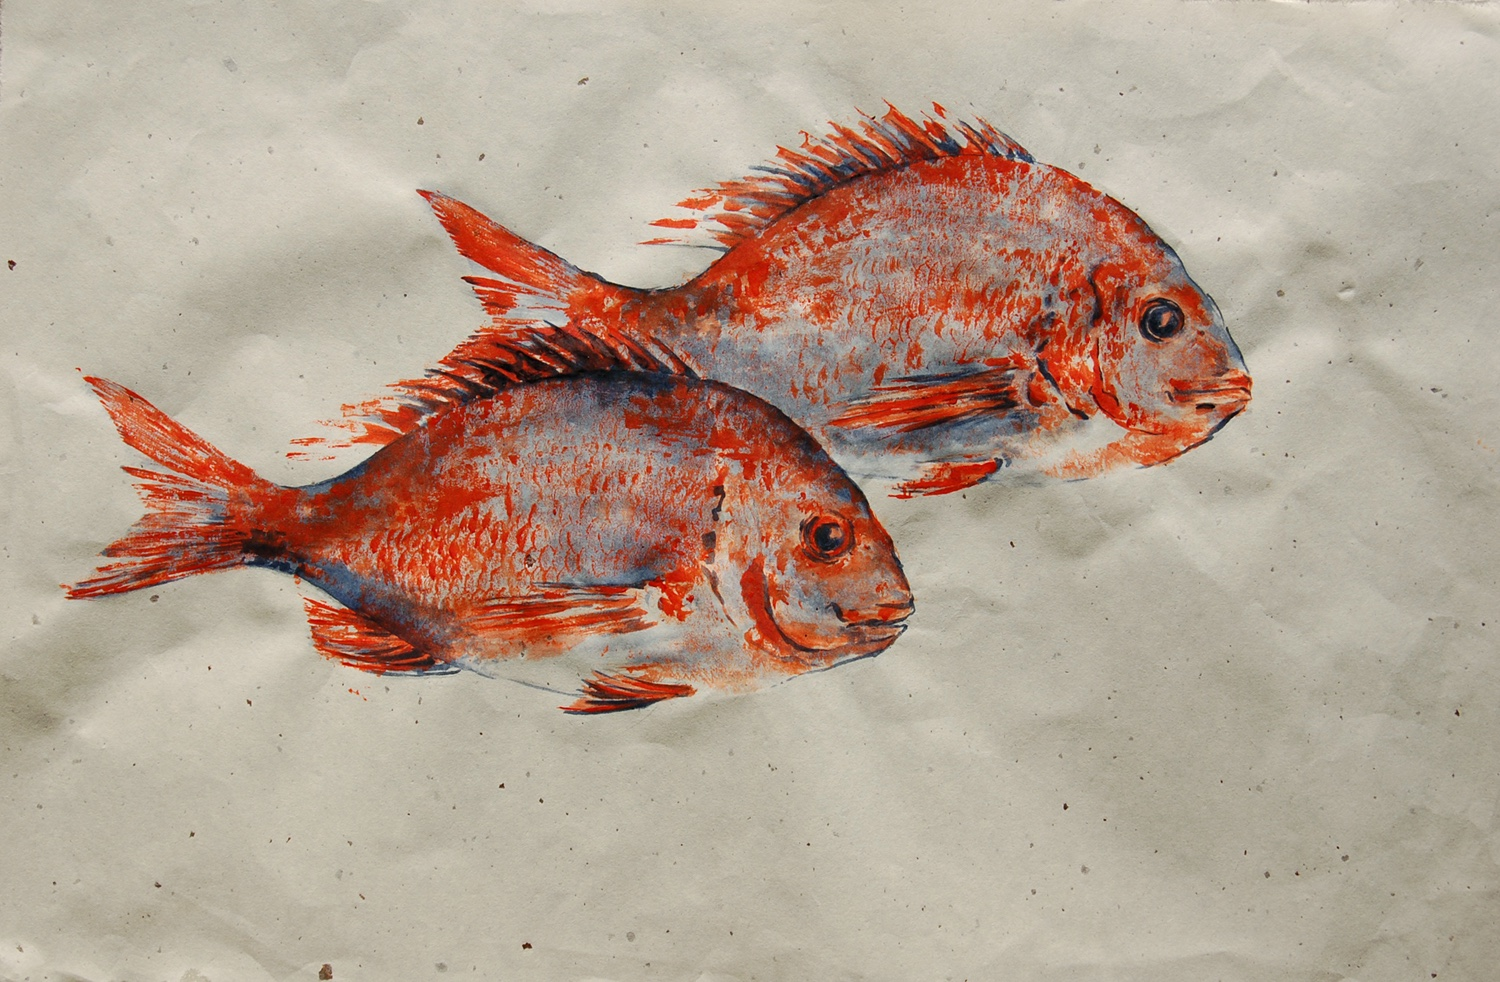 Gyotaku Fish Painting with Gillian Rhys @ Escape ArtFest